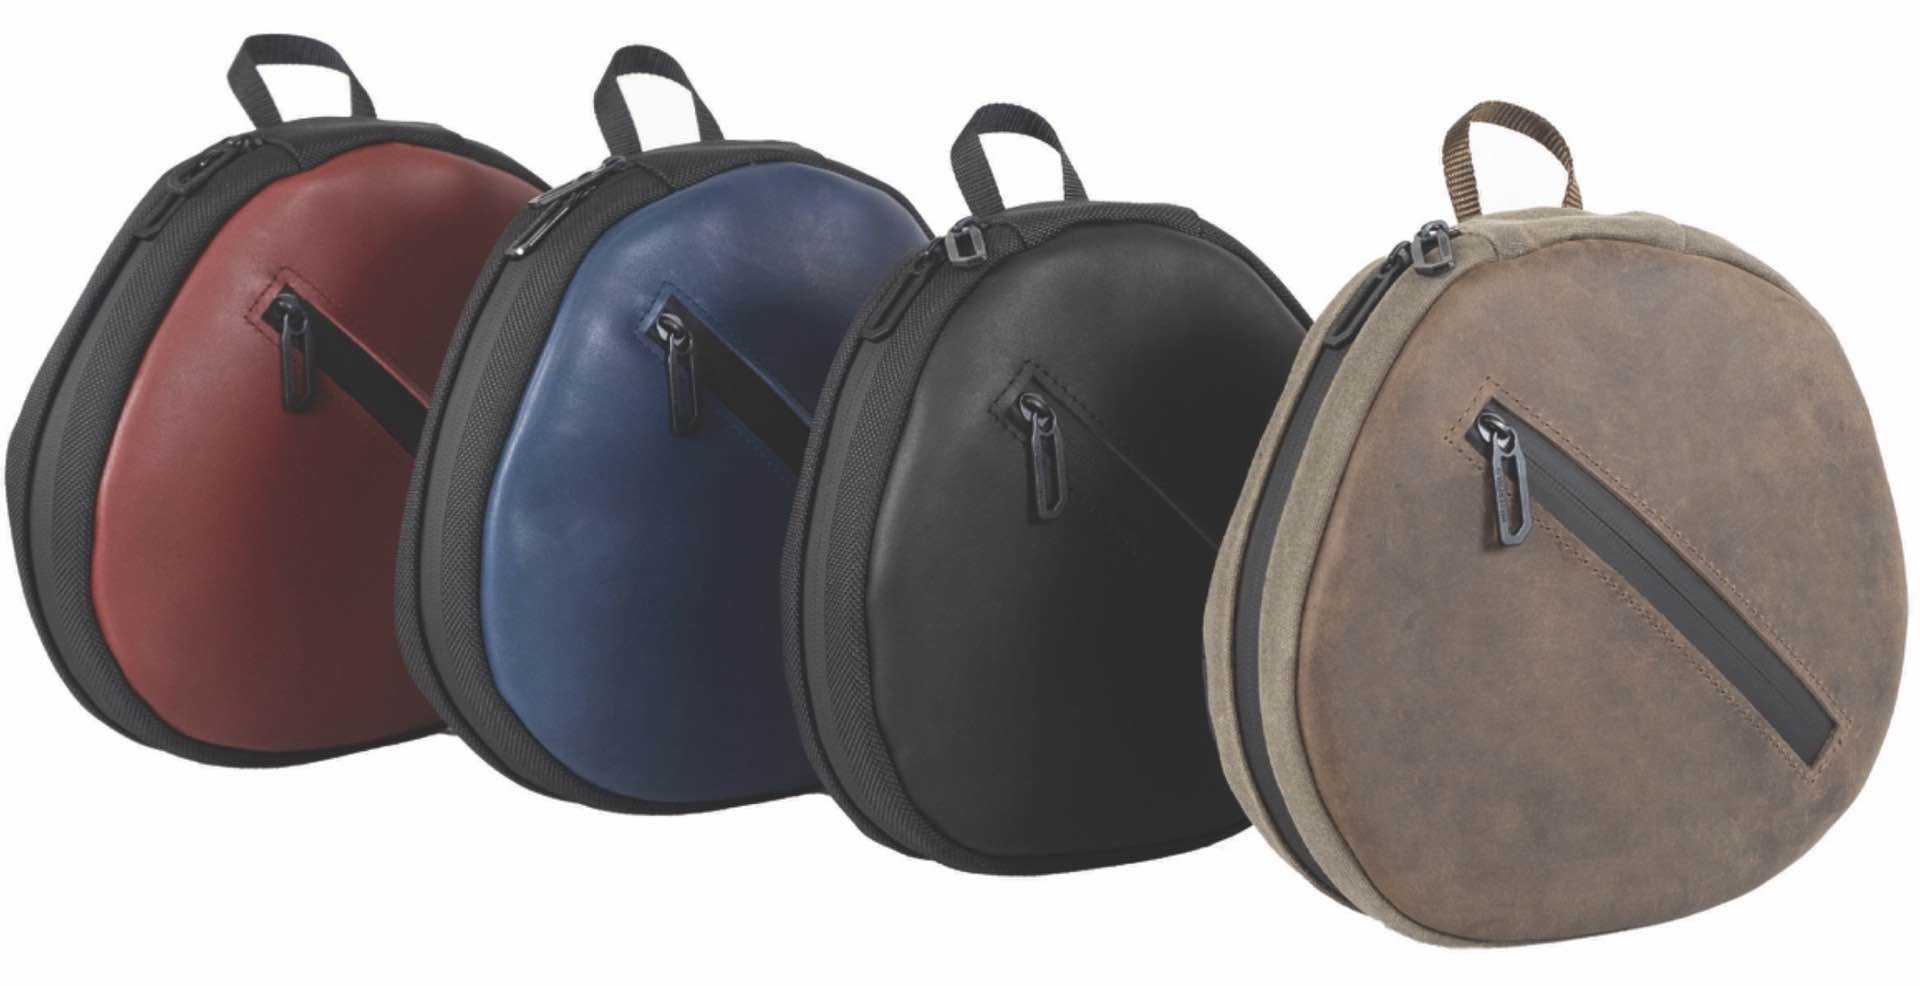 waterfield-designs-shield-case-for-airpods-max-colors